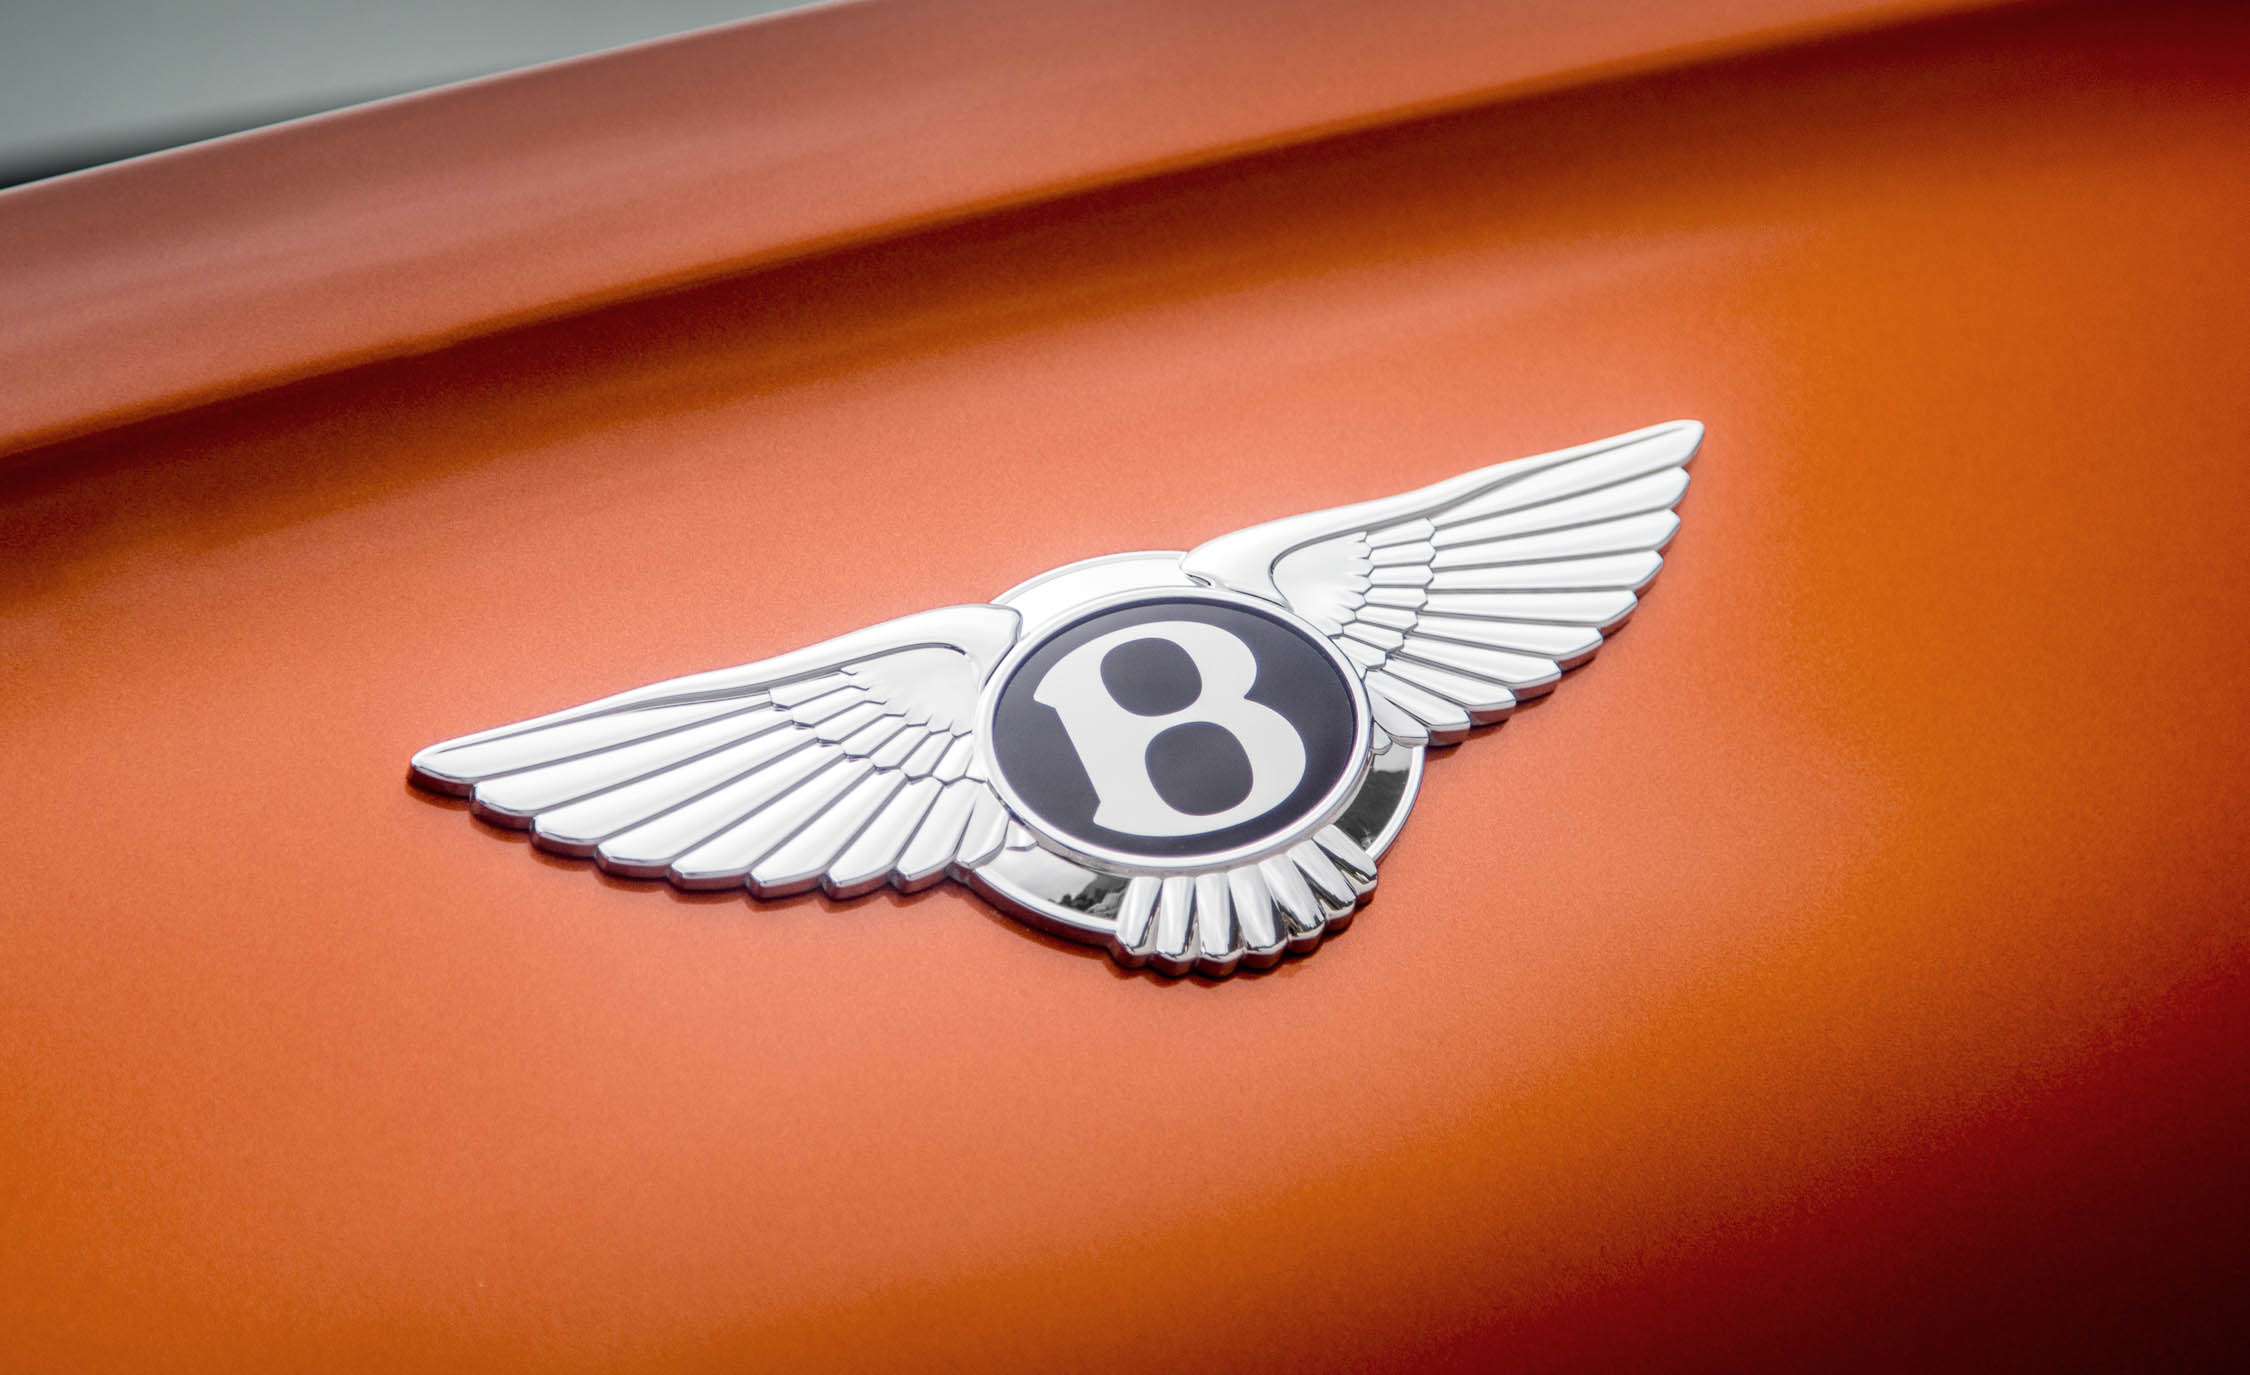 2018 Bentley Continental Supersports Convertible Exterior View Rear Badge (Photo 62 of 66)